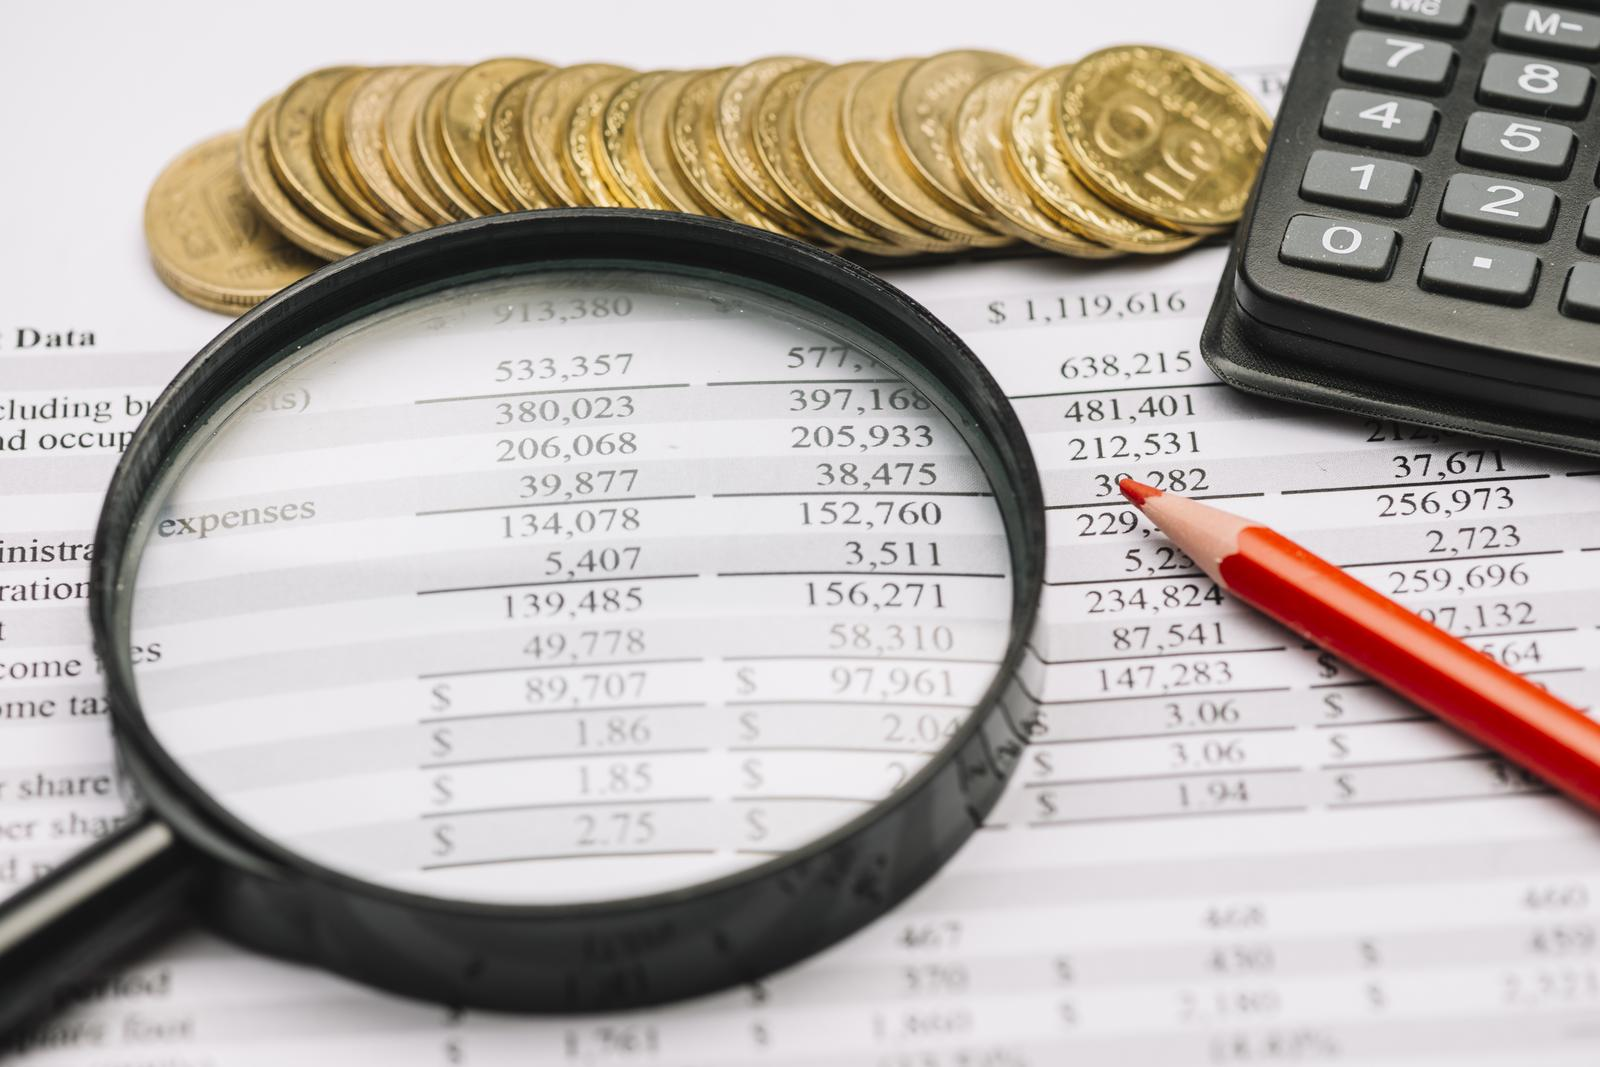 Trusts, funds and similar financial entities in Tallinn